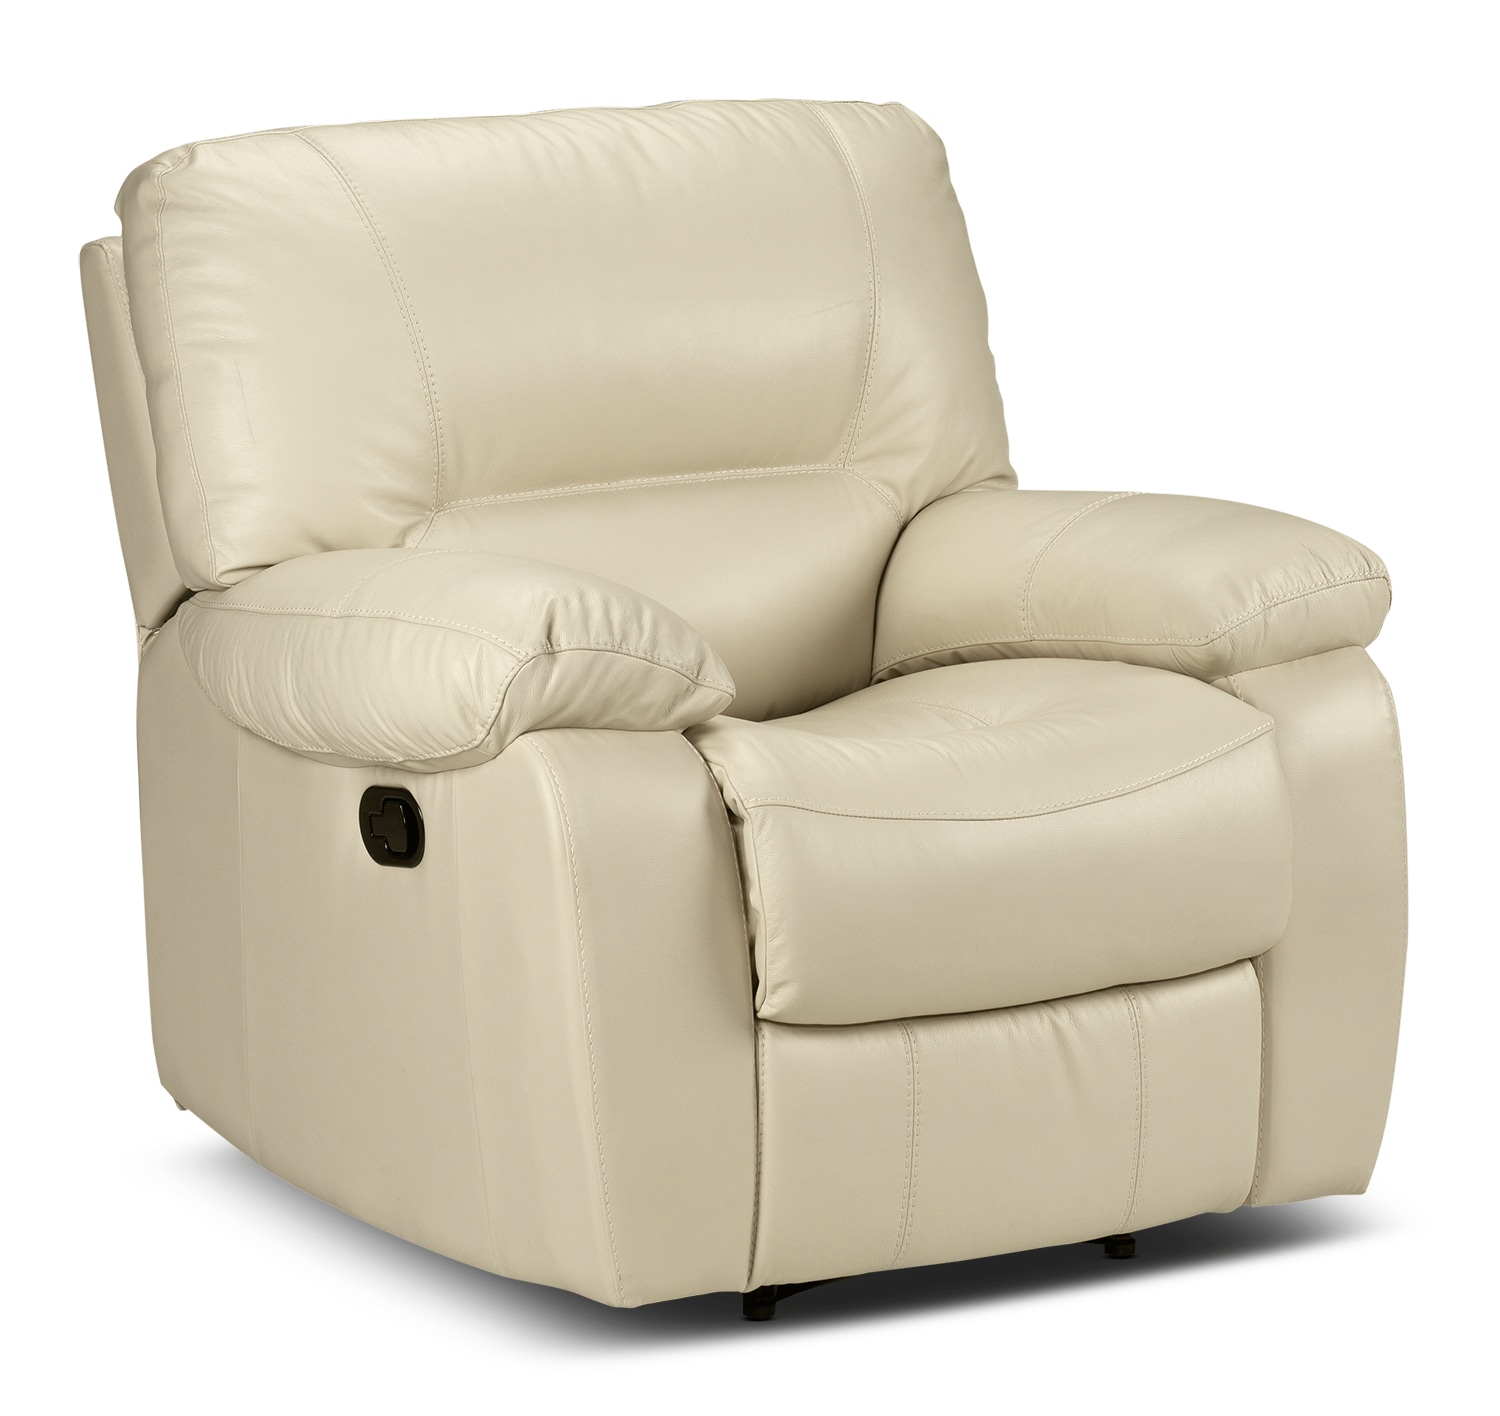 Piermont Recliner - Bisque